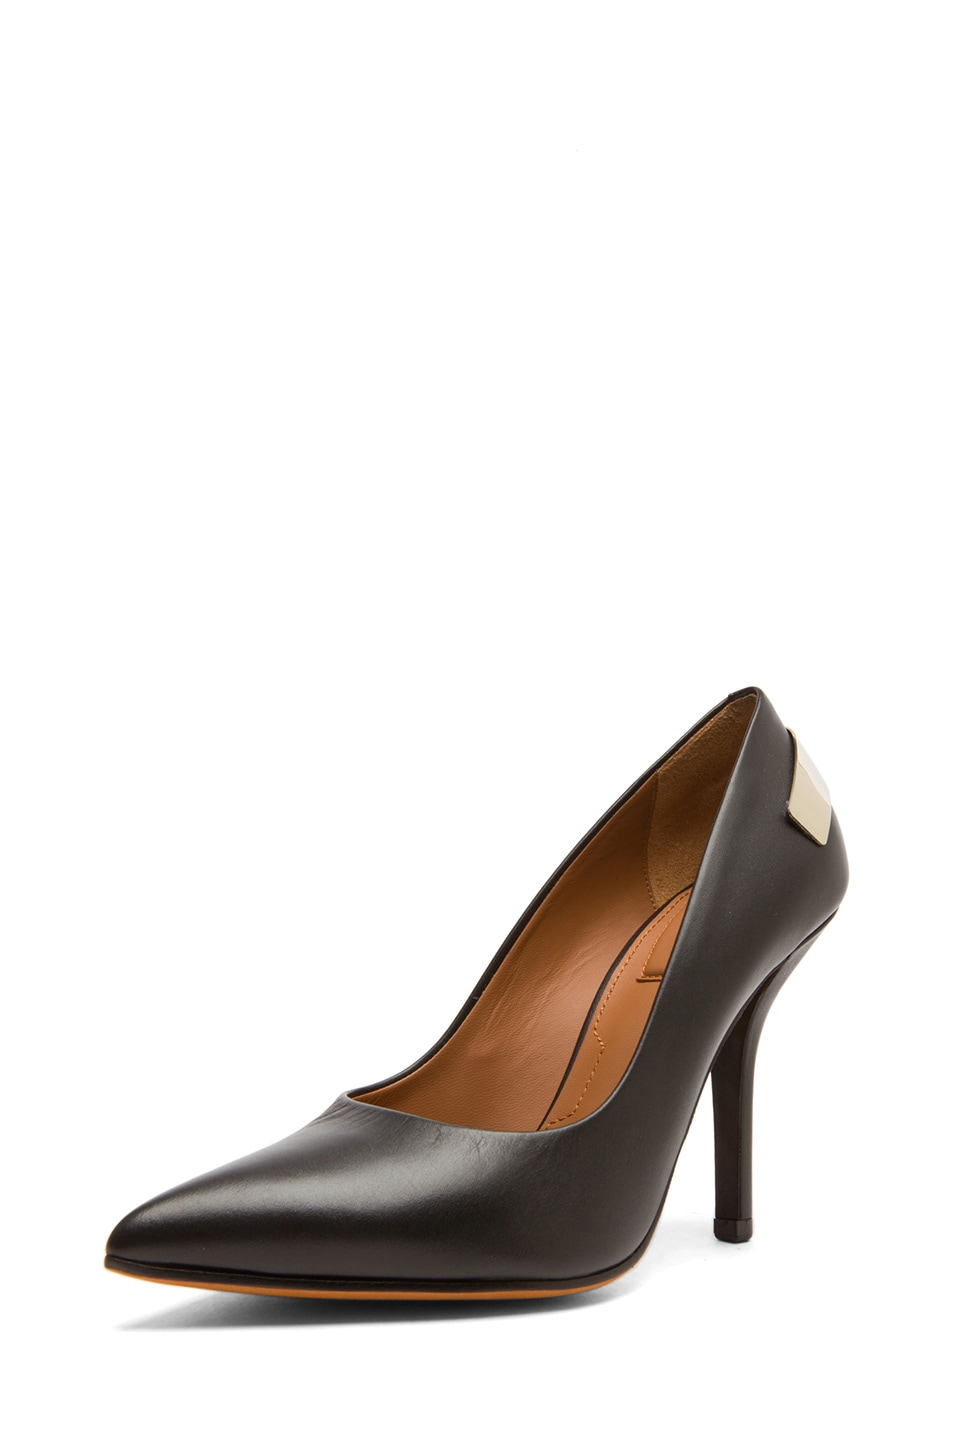 Image 2 of Givenchy Calfskin Leather Pumps in Black